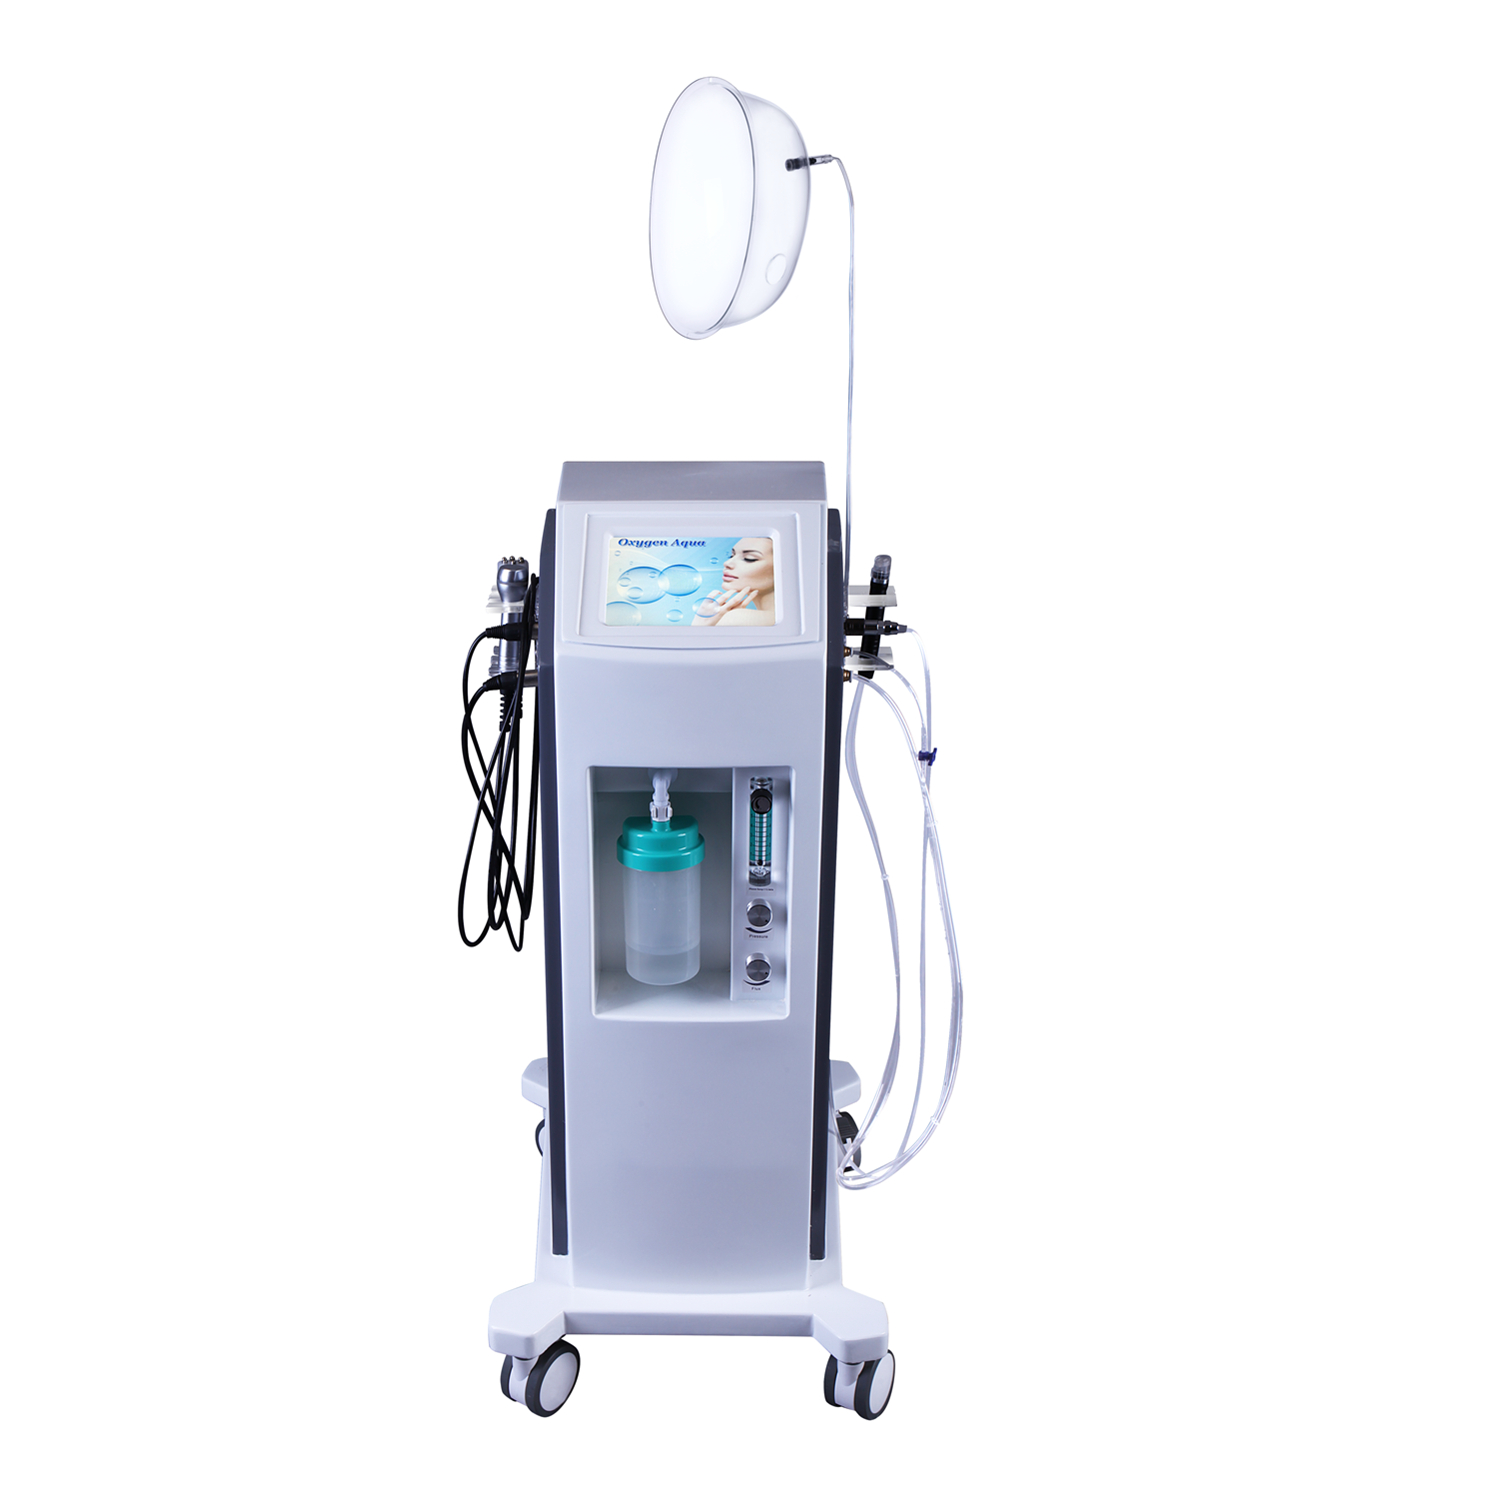 Hydra Facial Cleaning Machine for Skin Rejuvenation /Acne Behandlung